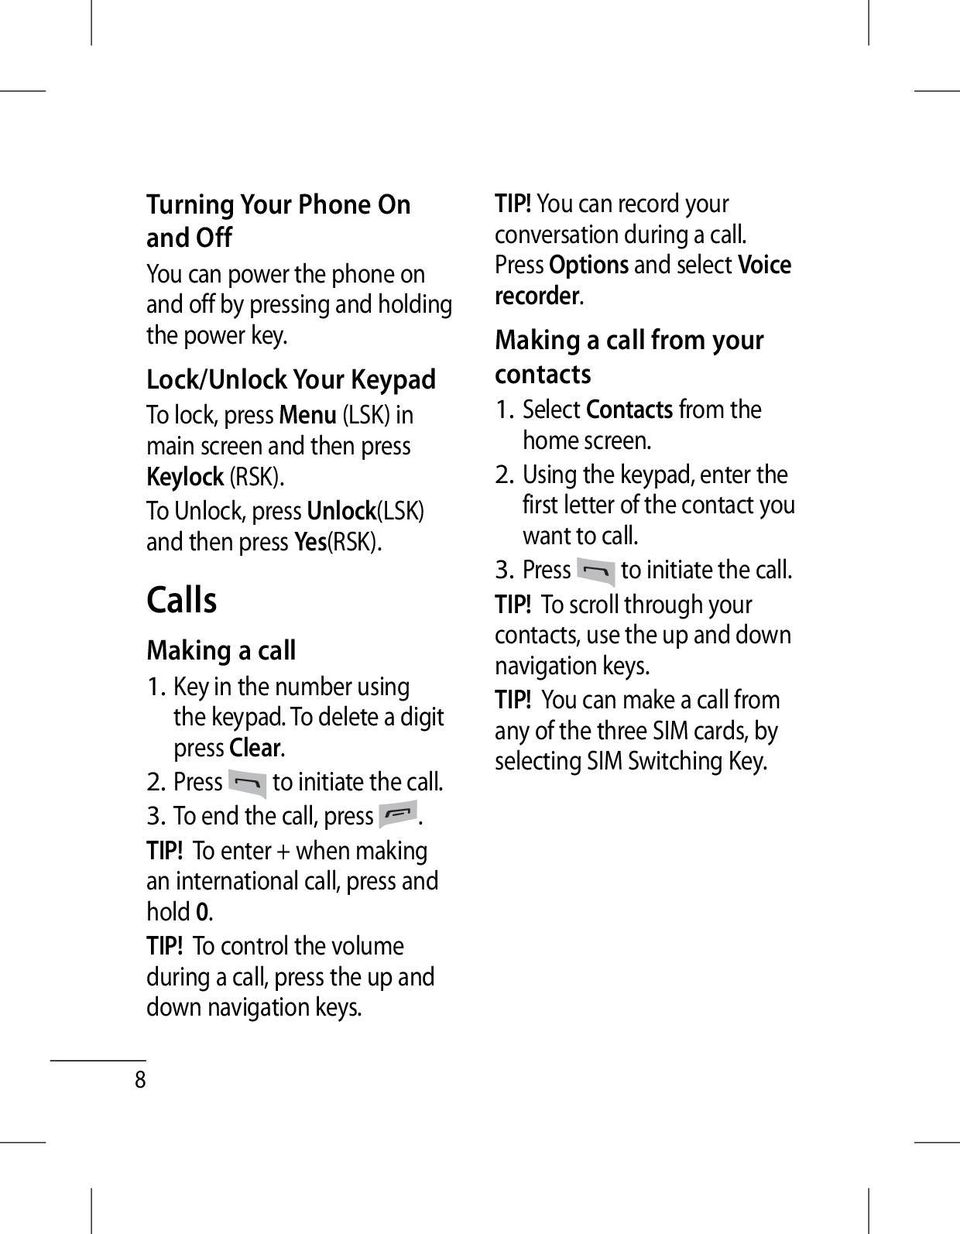 To end the call, press. TIP! To enter + when making an international call, press and hold 0. TIP! To control the volume during a call, press the up and down navigation keys. TIP! You can record your conversation during a call.